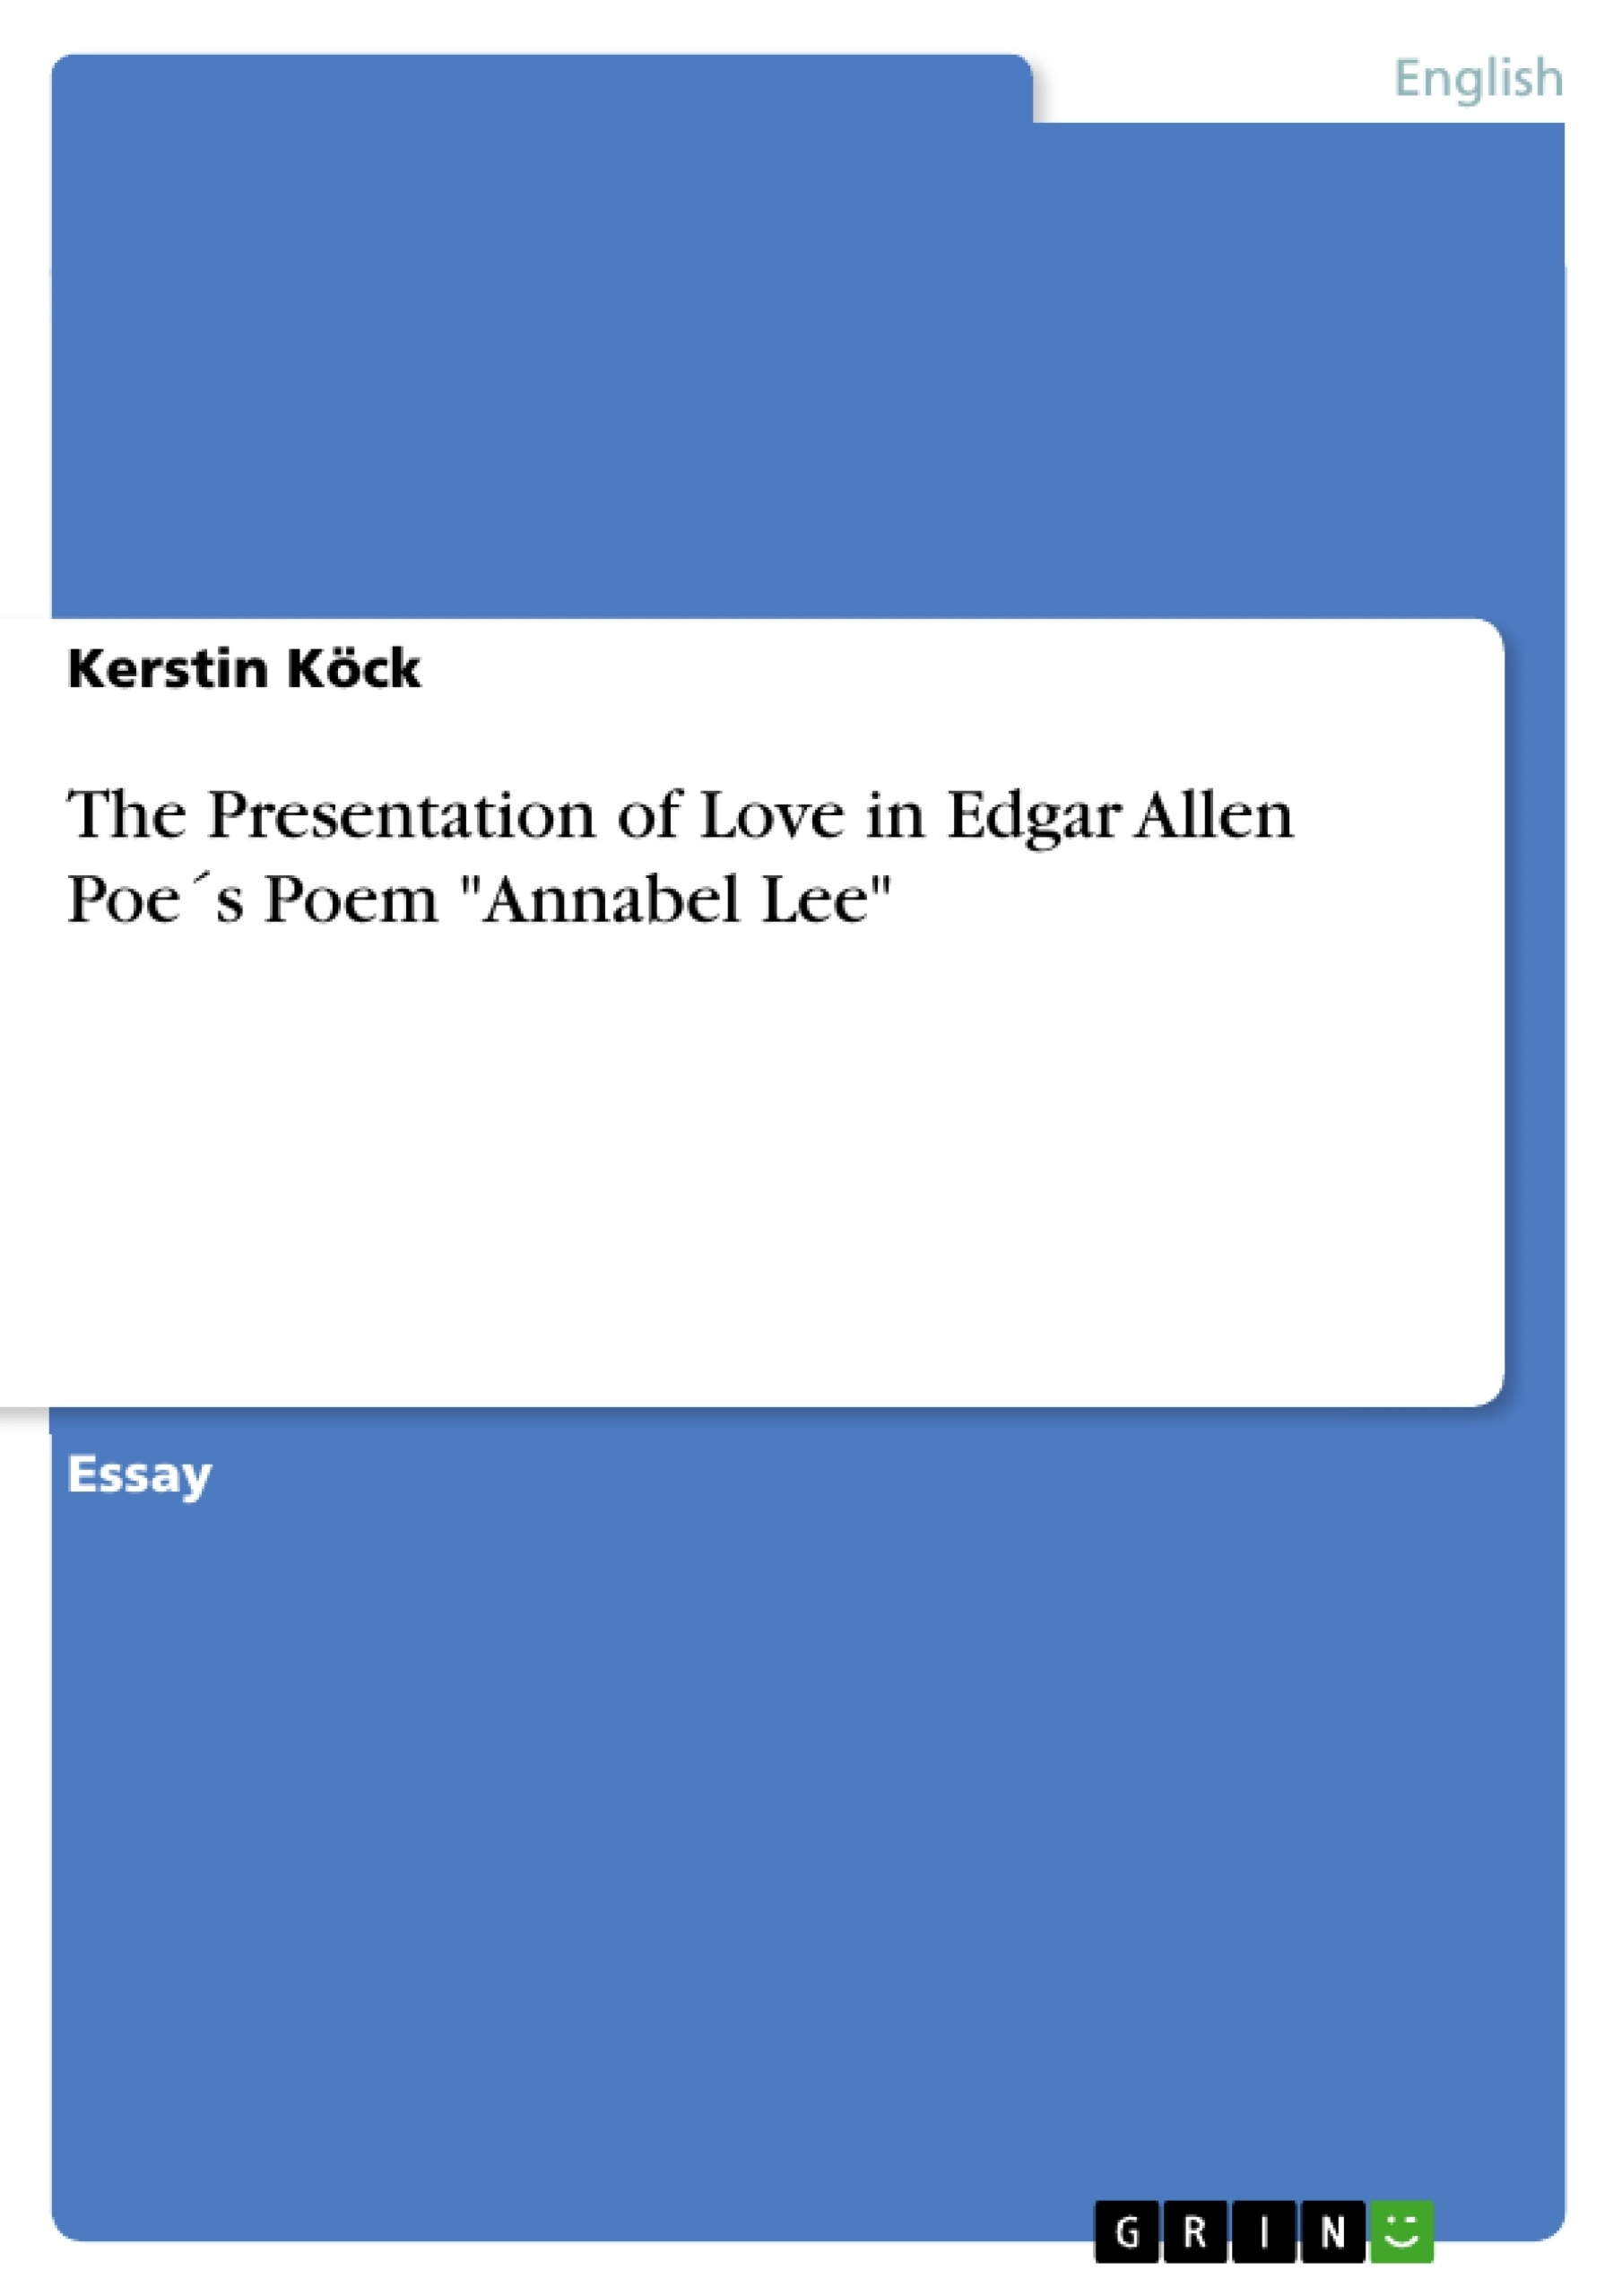 the presentation of love in edgar allen poe acute s poem annabel lee the presentation of love in edgar allen poeacutes poem annabel lee publish your master s thesis bachelor s thesis essay or term paper